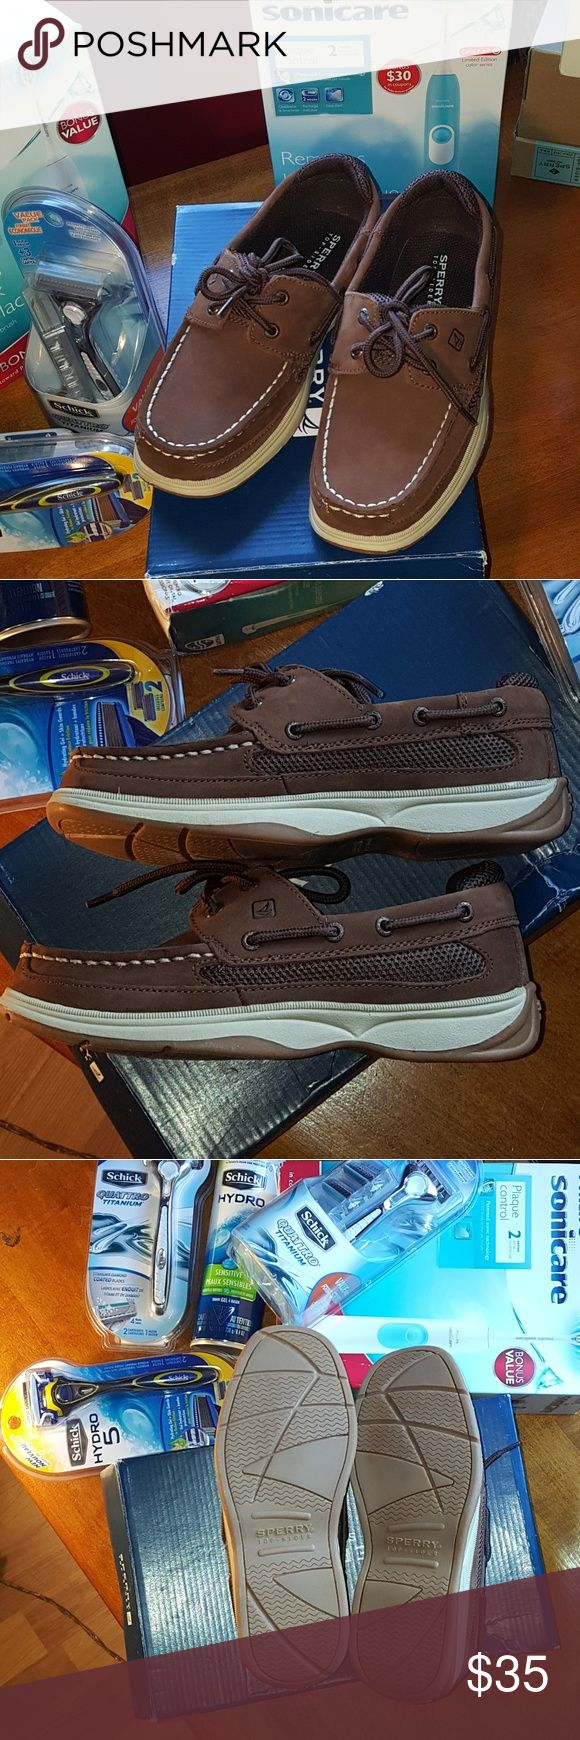 """Sperry shoes size Sperry kids top sider """"lanyard"""" in cigar brown size 3m-features a hand-sewn leather construction, mesh panels for ventilation andan outsole that's specially designed to keep you stabilized on slippery surfaces. Leather/mesh uppers, lace-up front, rubber outsole. New in box.  See my closet for other great items clothes bundles save 10 to 20% on 2 or more items. Clearance marked: 🇺🇸30 😎20% just deduct & use offer button i will accept. Sperry Top-Sider Shoes"""